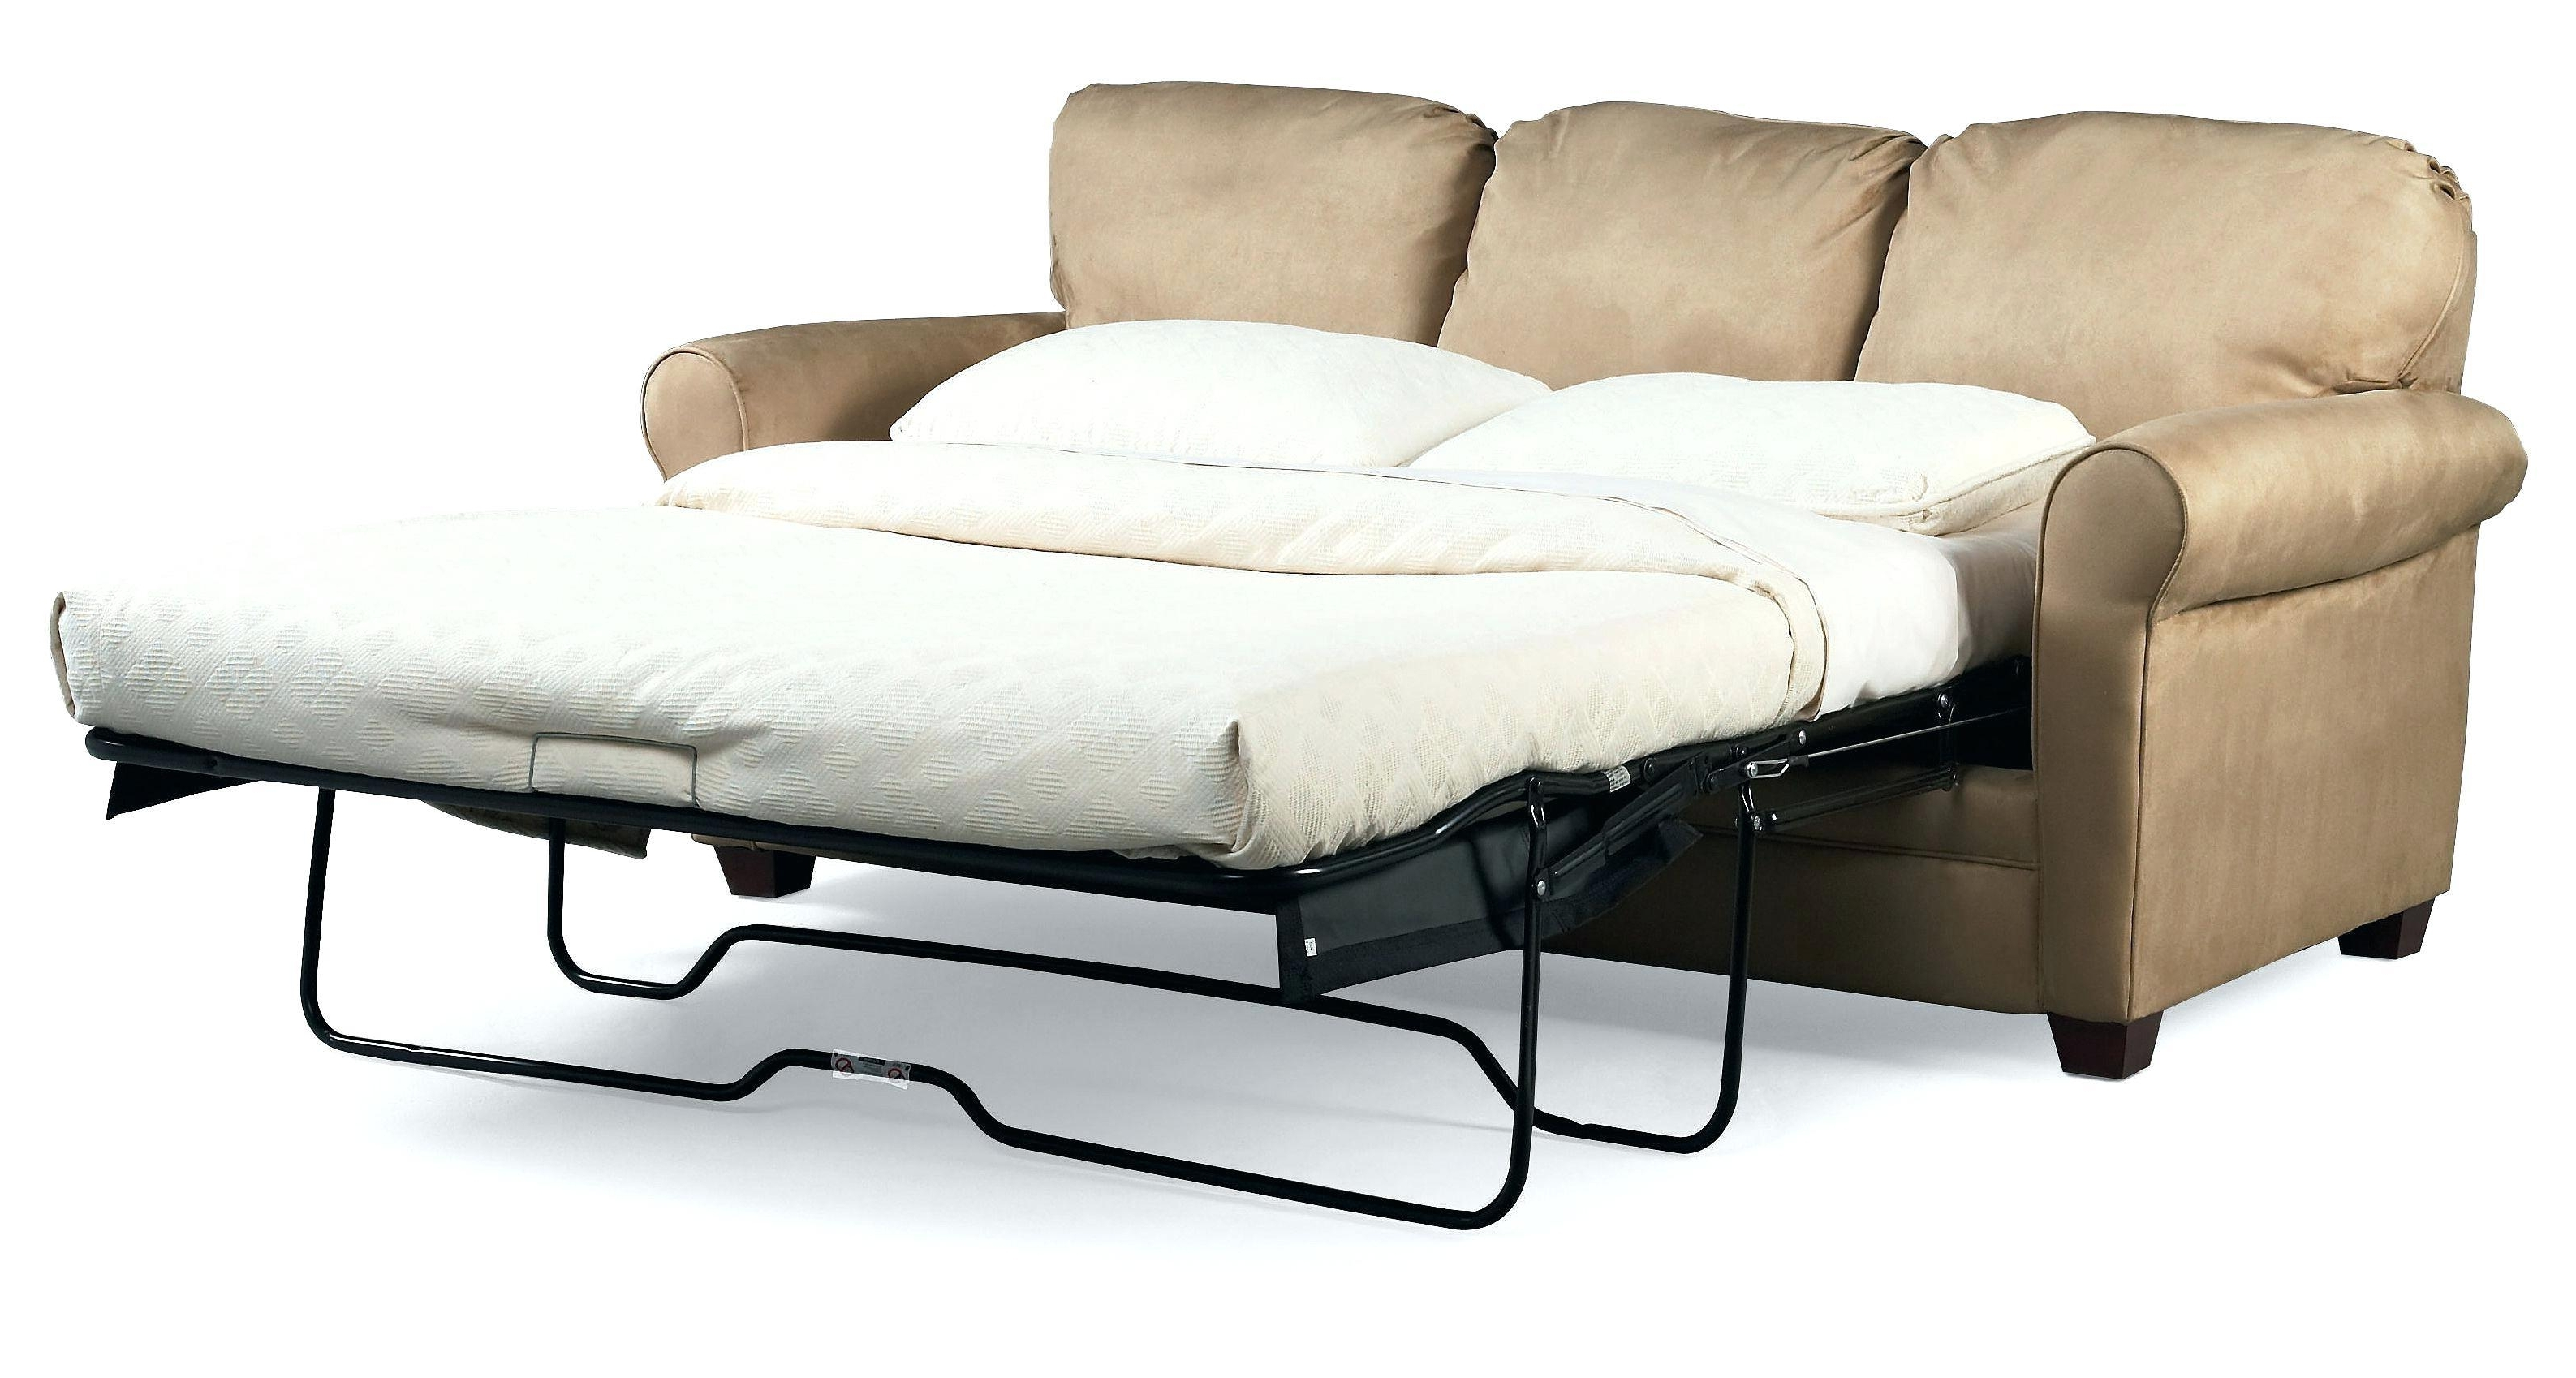 Popular Awesome Queen Size Sleeper Sofa Sa With Memory Foam Mattress Provo Intended For Queen Size Sofas (View 11 of 20)